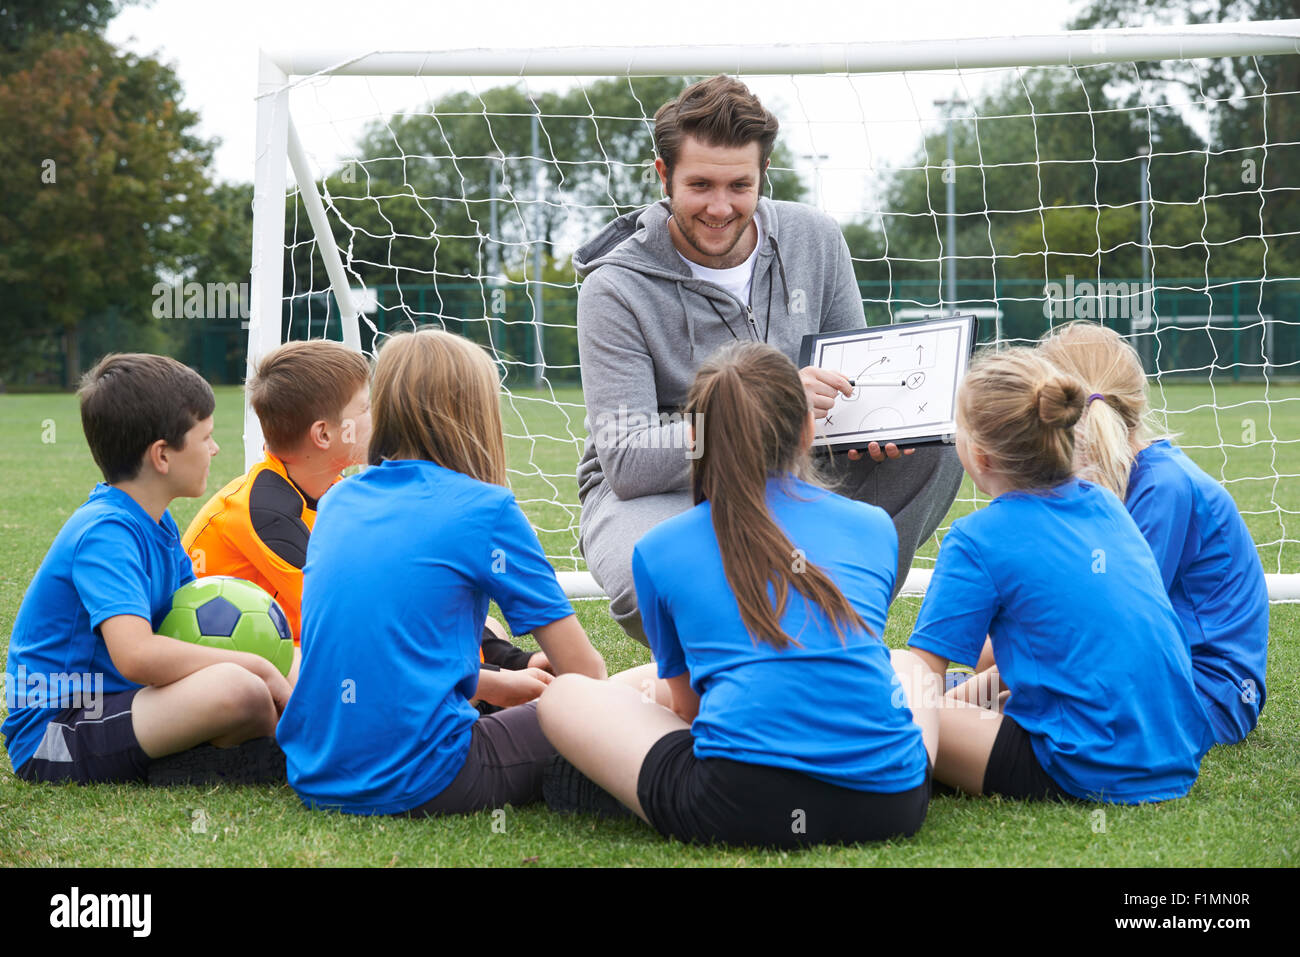 Coach Giving Team Talk To Elementary School Soccer Team - Stock Image